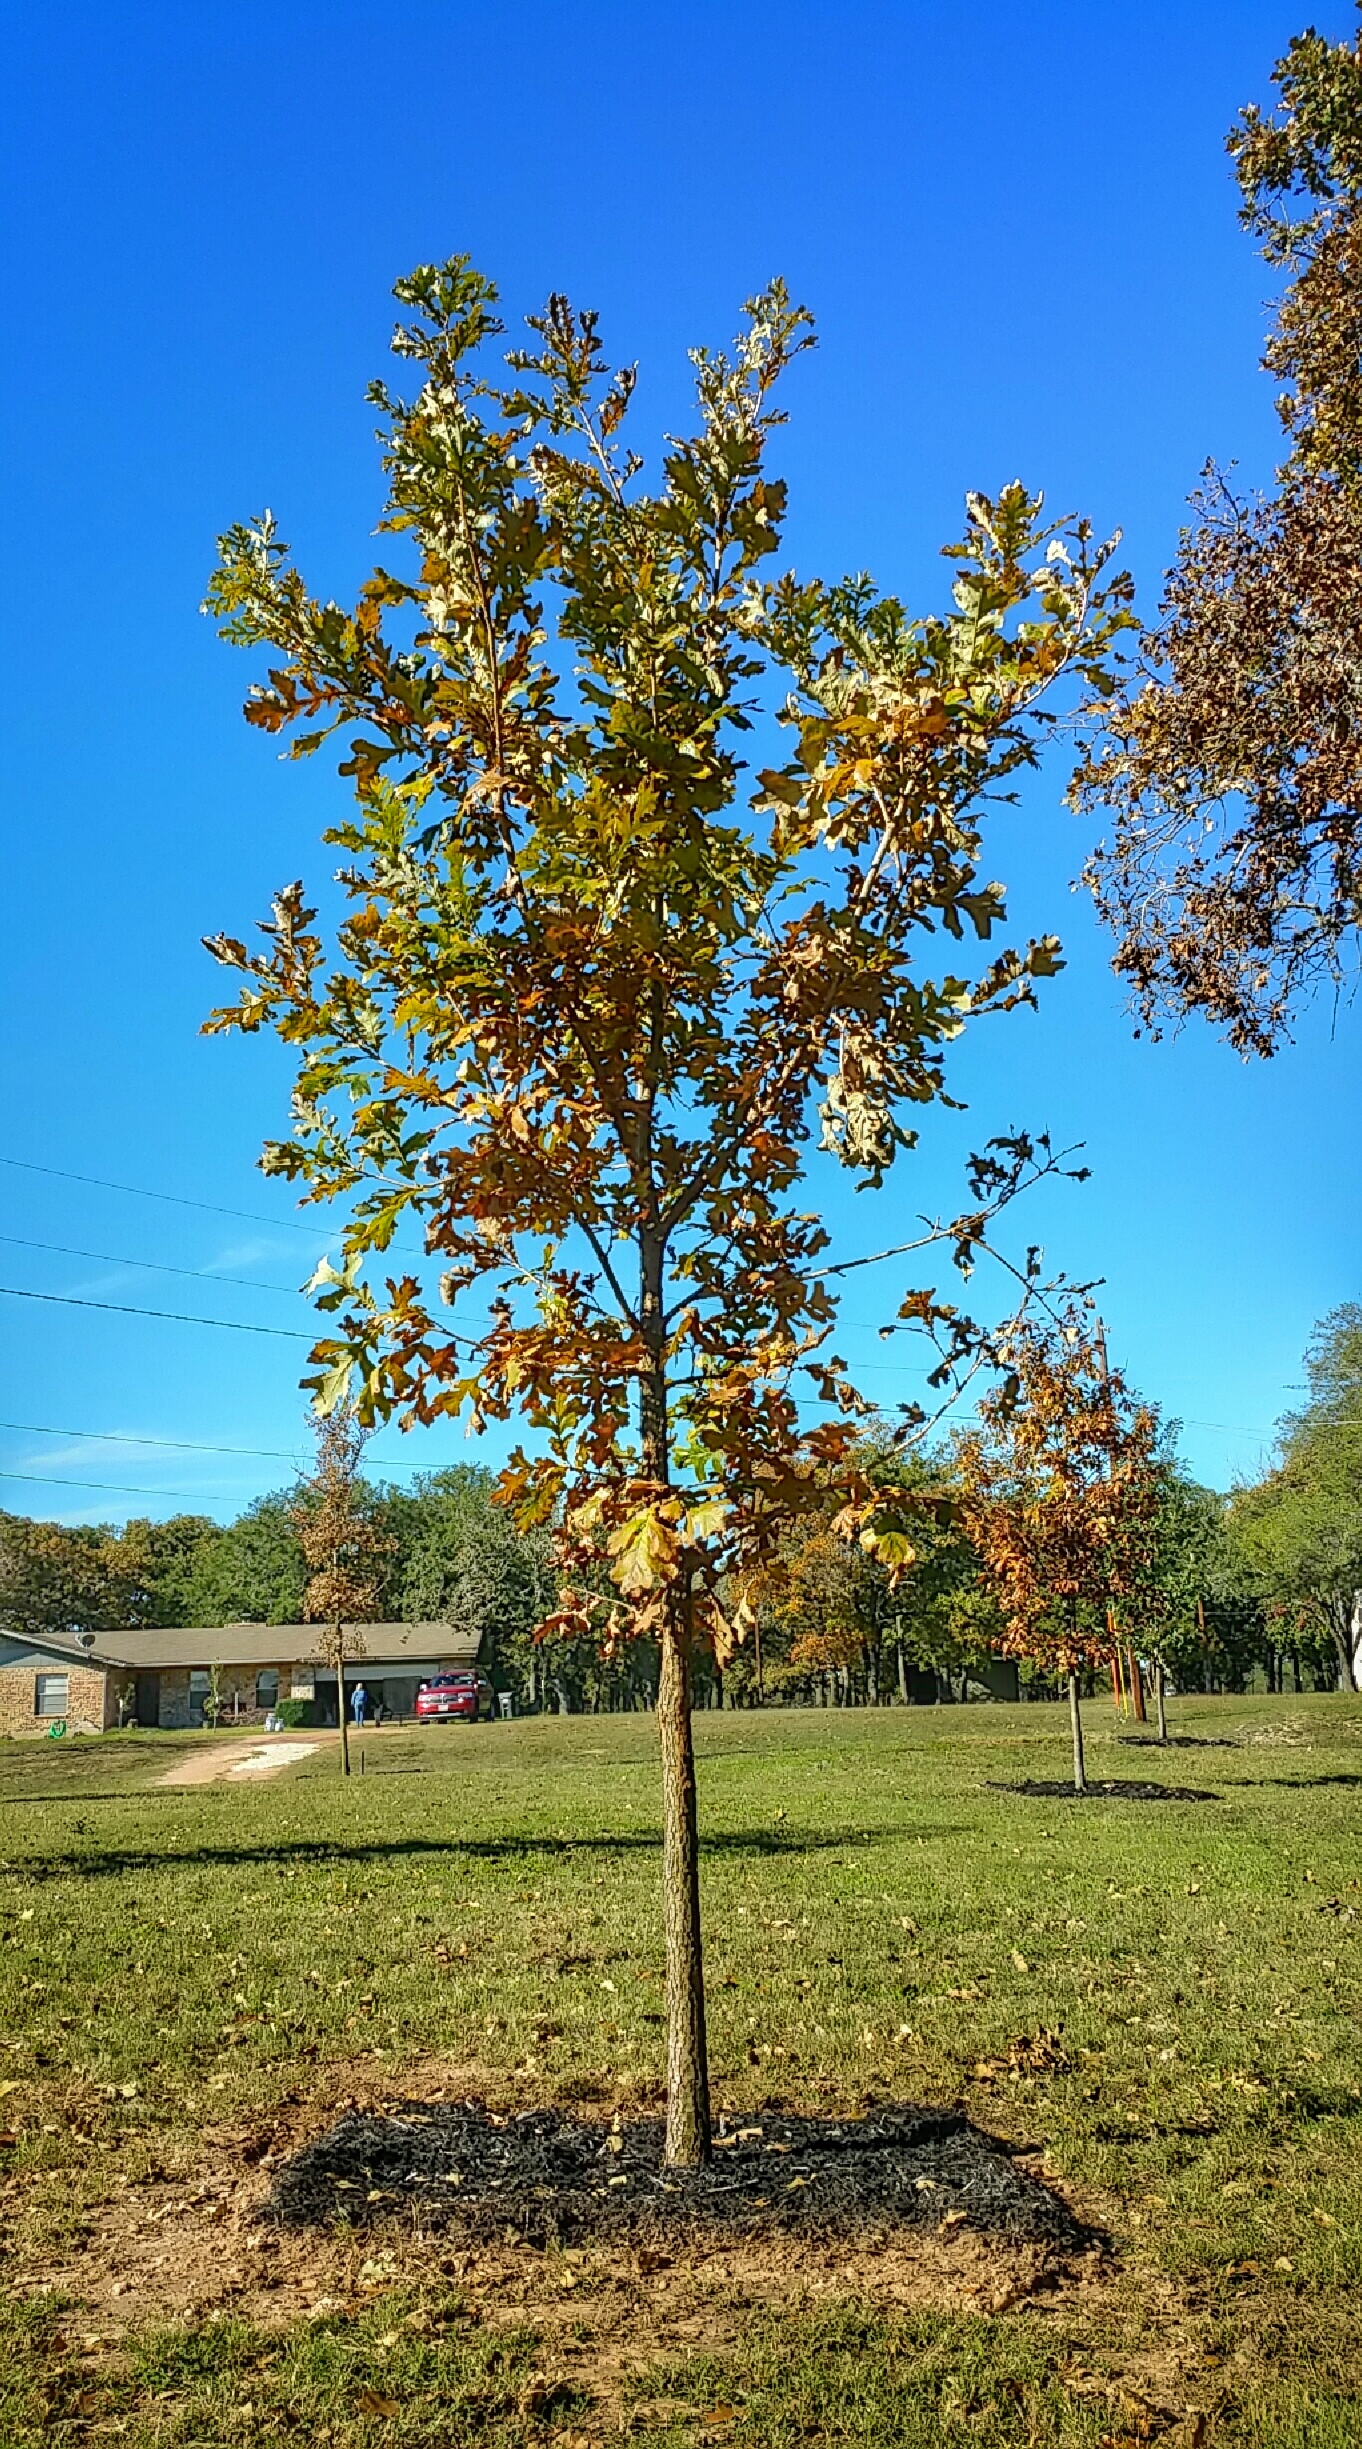 A beautiful Bur Oak such as this one will provide generations of shade, comfort, and curb appeal. Certainly a secure investment with enduring value.